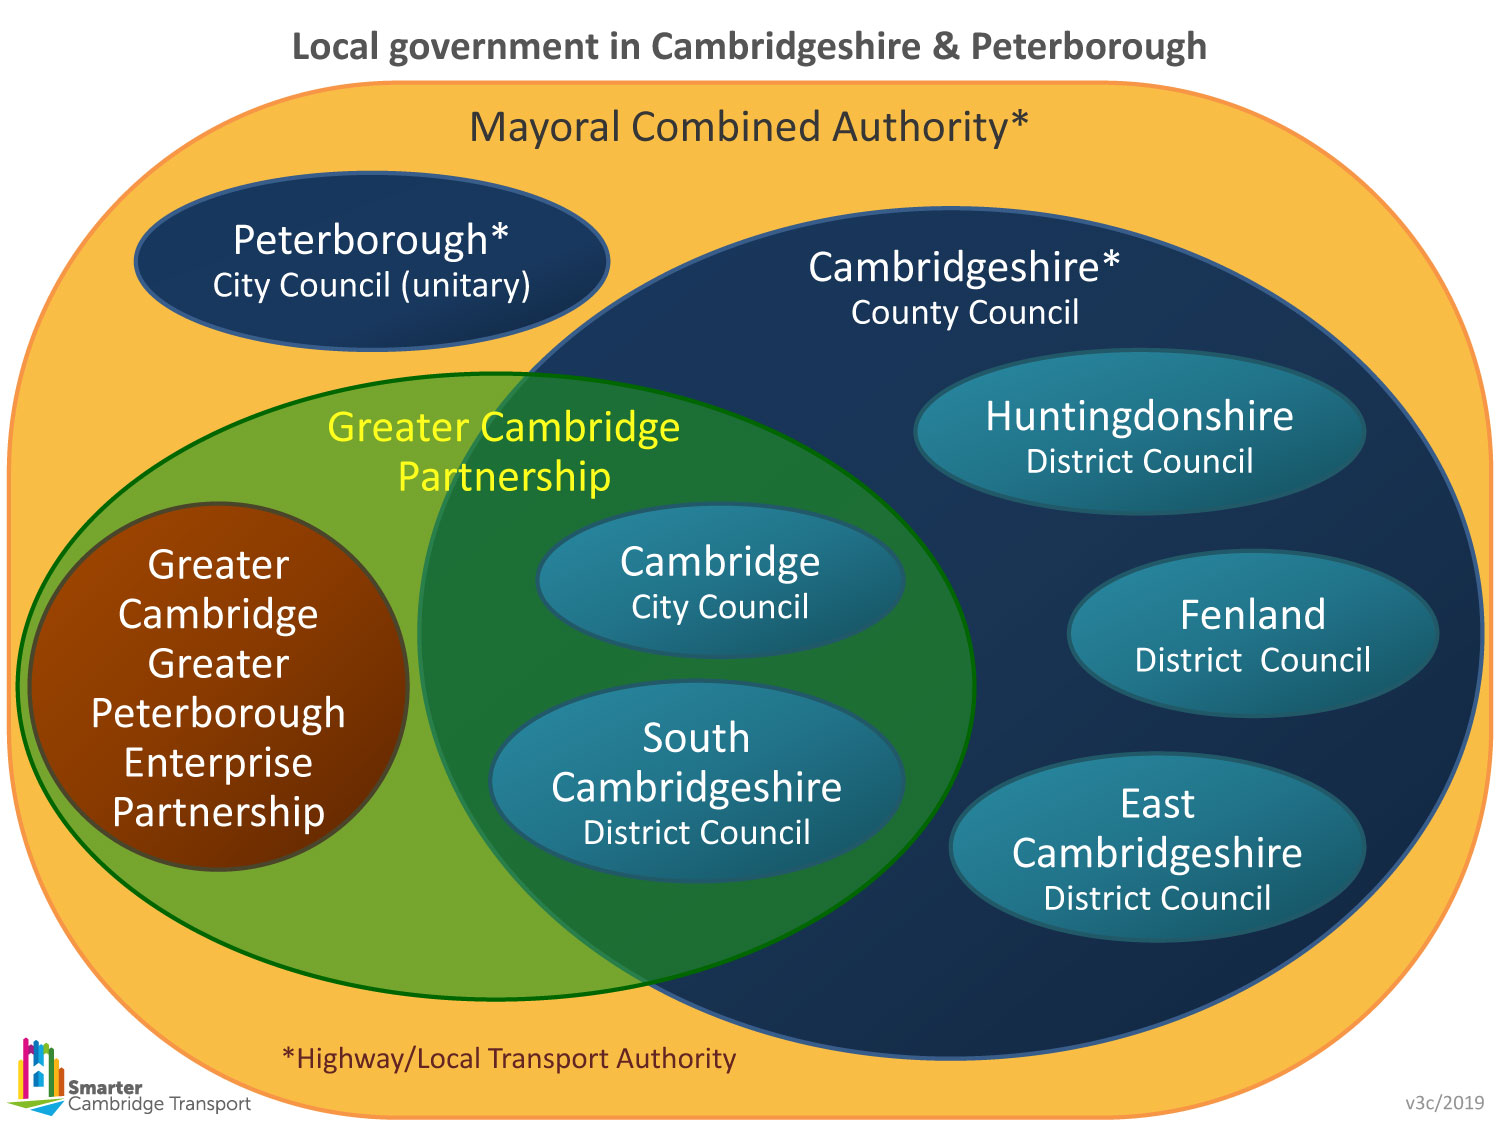 Local government in Cambridgeshire and Peterborough